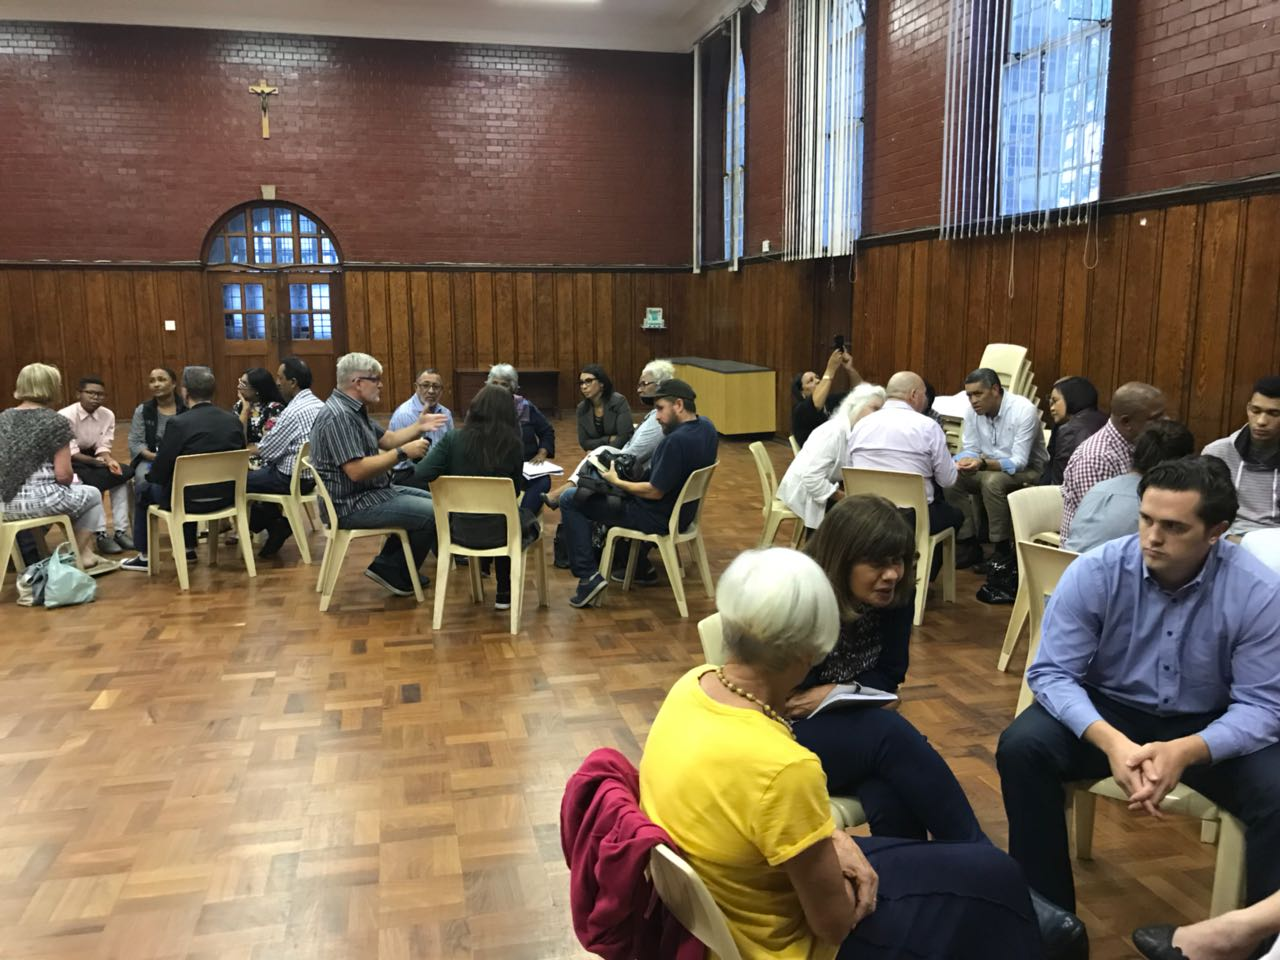 Last night we had a great meeting at St Goerges Cathedral to discuss and plan the (re)opening of an emergency shelter in the hall next to St Goerges. We saw a fantastic representation from many key roleplayers in the homeless sector. Our desire and hope is that it will help those living on the street to find short-term intervention which will hopefully lead to long-term developmental assistance.